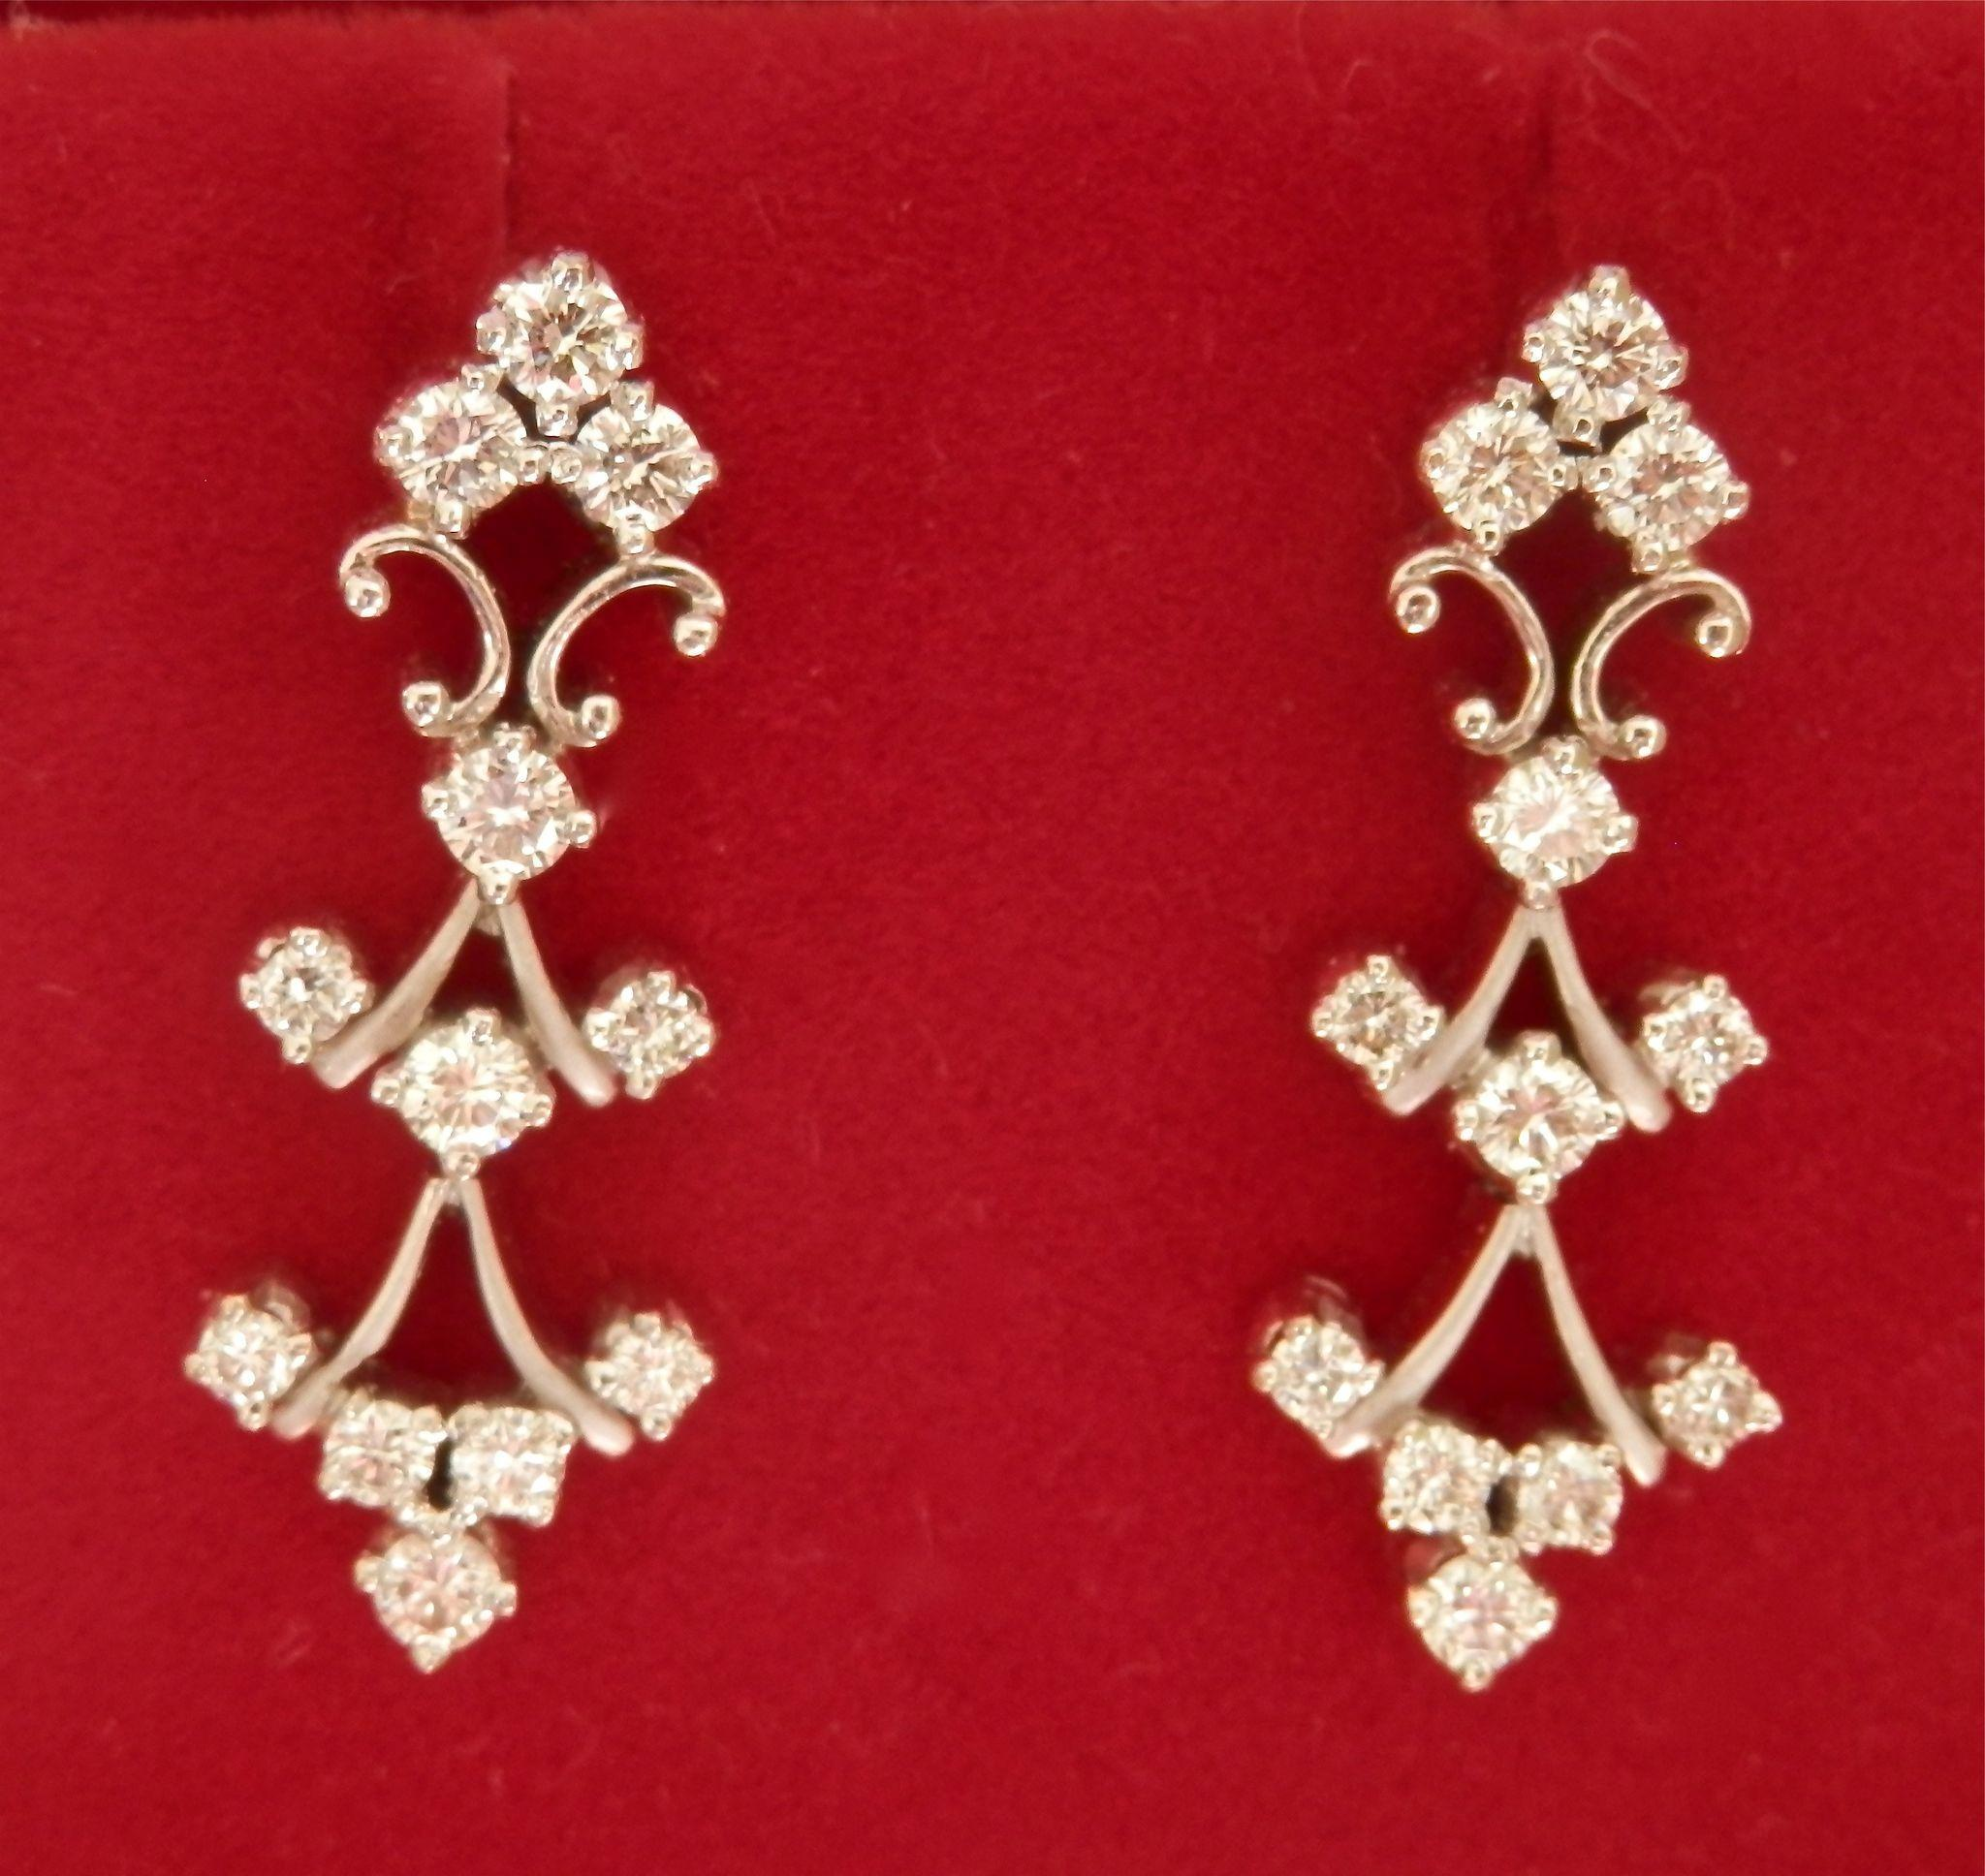 Elegant 14K W/Gold 0.78 cts. Diamond Drop Earrings